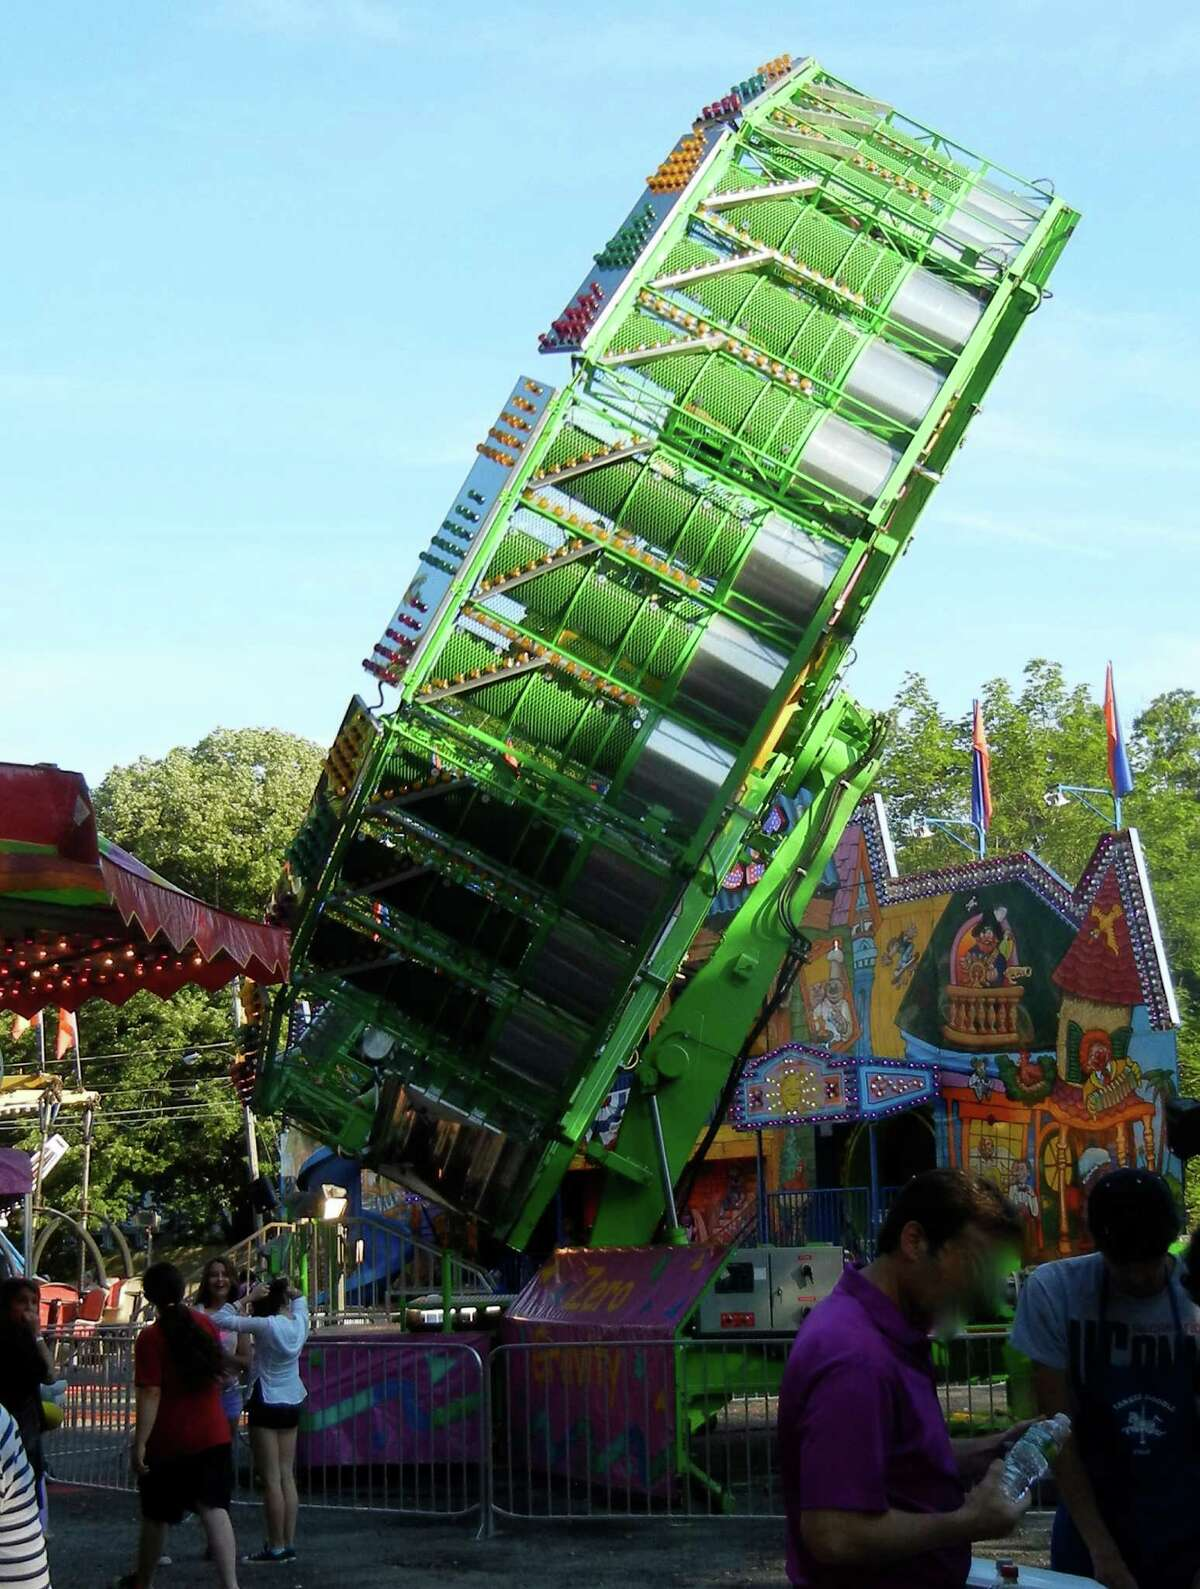 Rides like Zero-Gravity are major attractions at the Yankee Doodle Fair on the grounds of Westport Woman's Club from June 13-16.